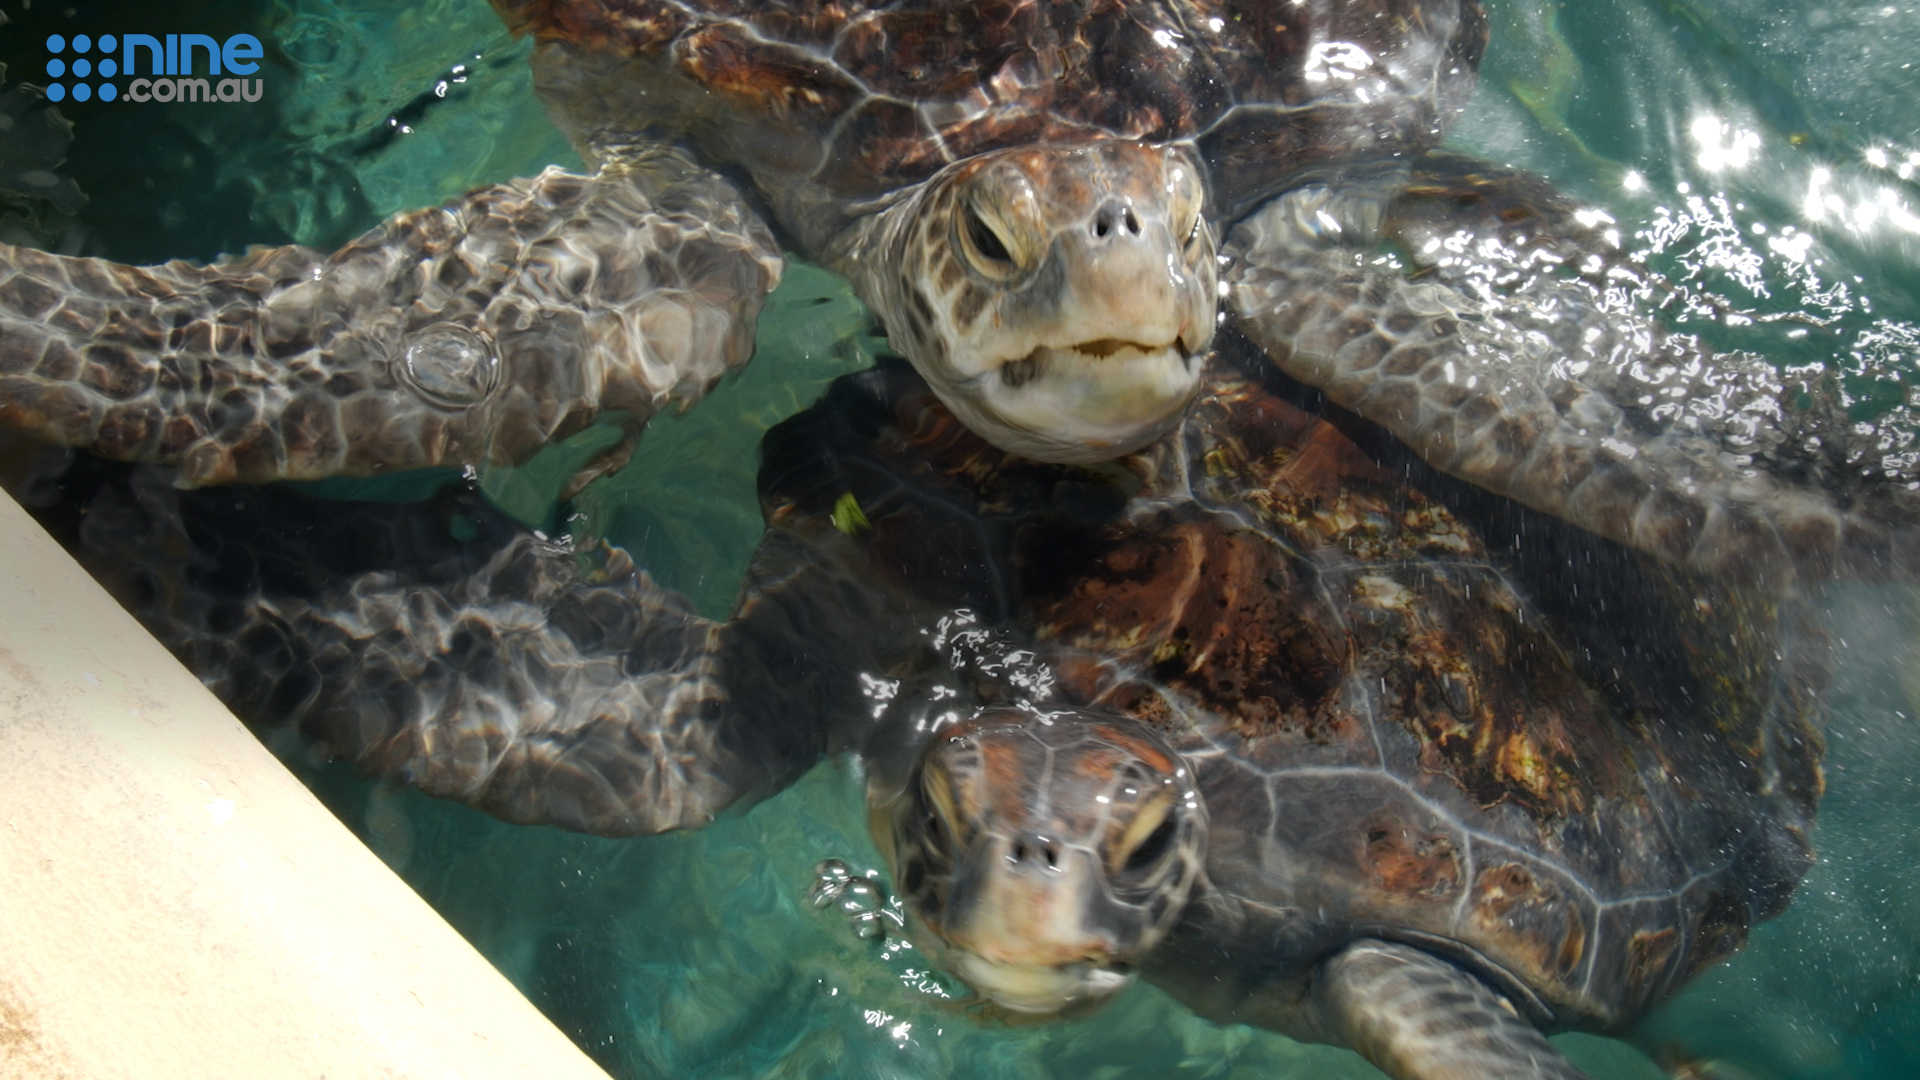 Sea turtles released as mystery pollutant causes animals to 'float'